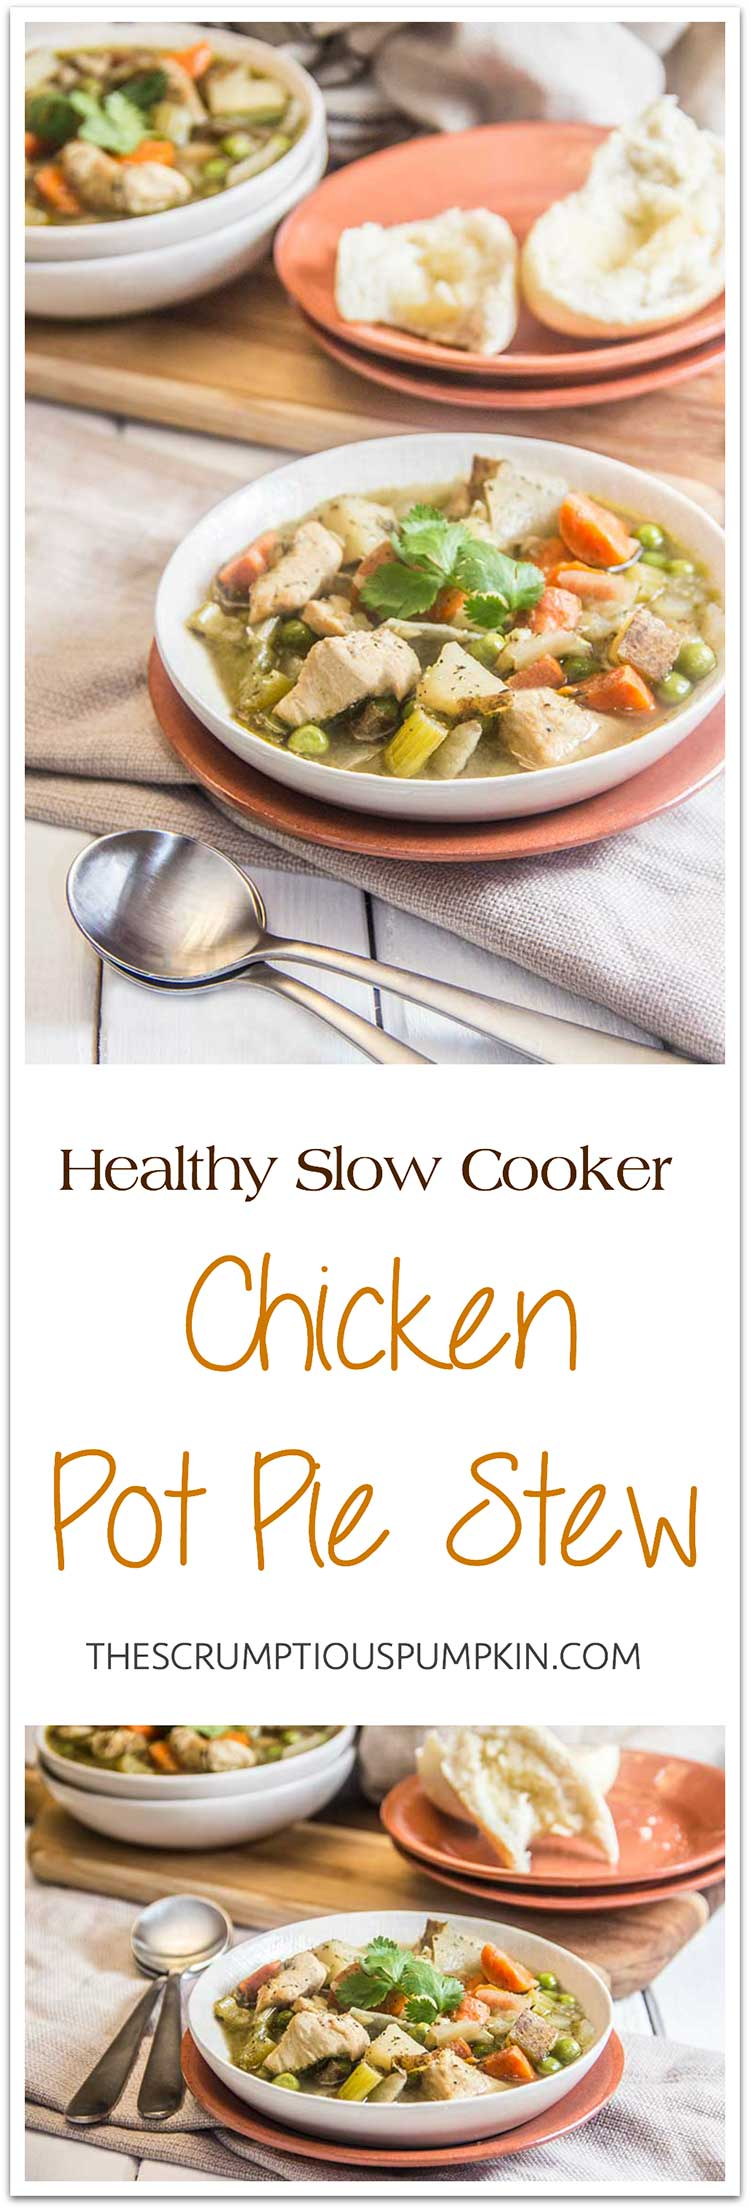 Healthy-Slow-Cooker-Chicken-Pot-Pie-Stew